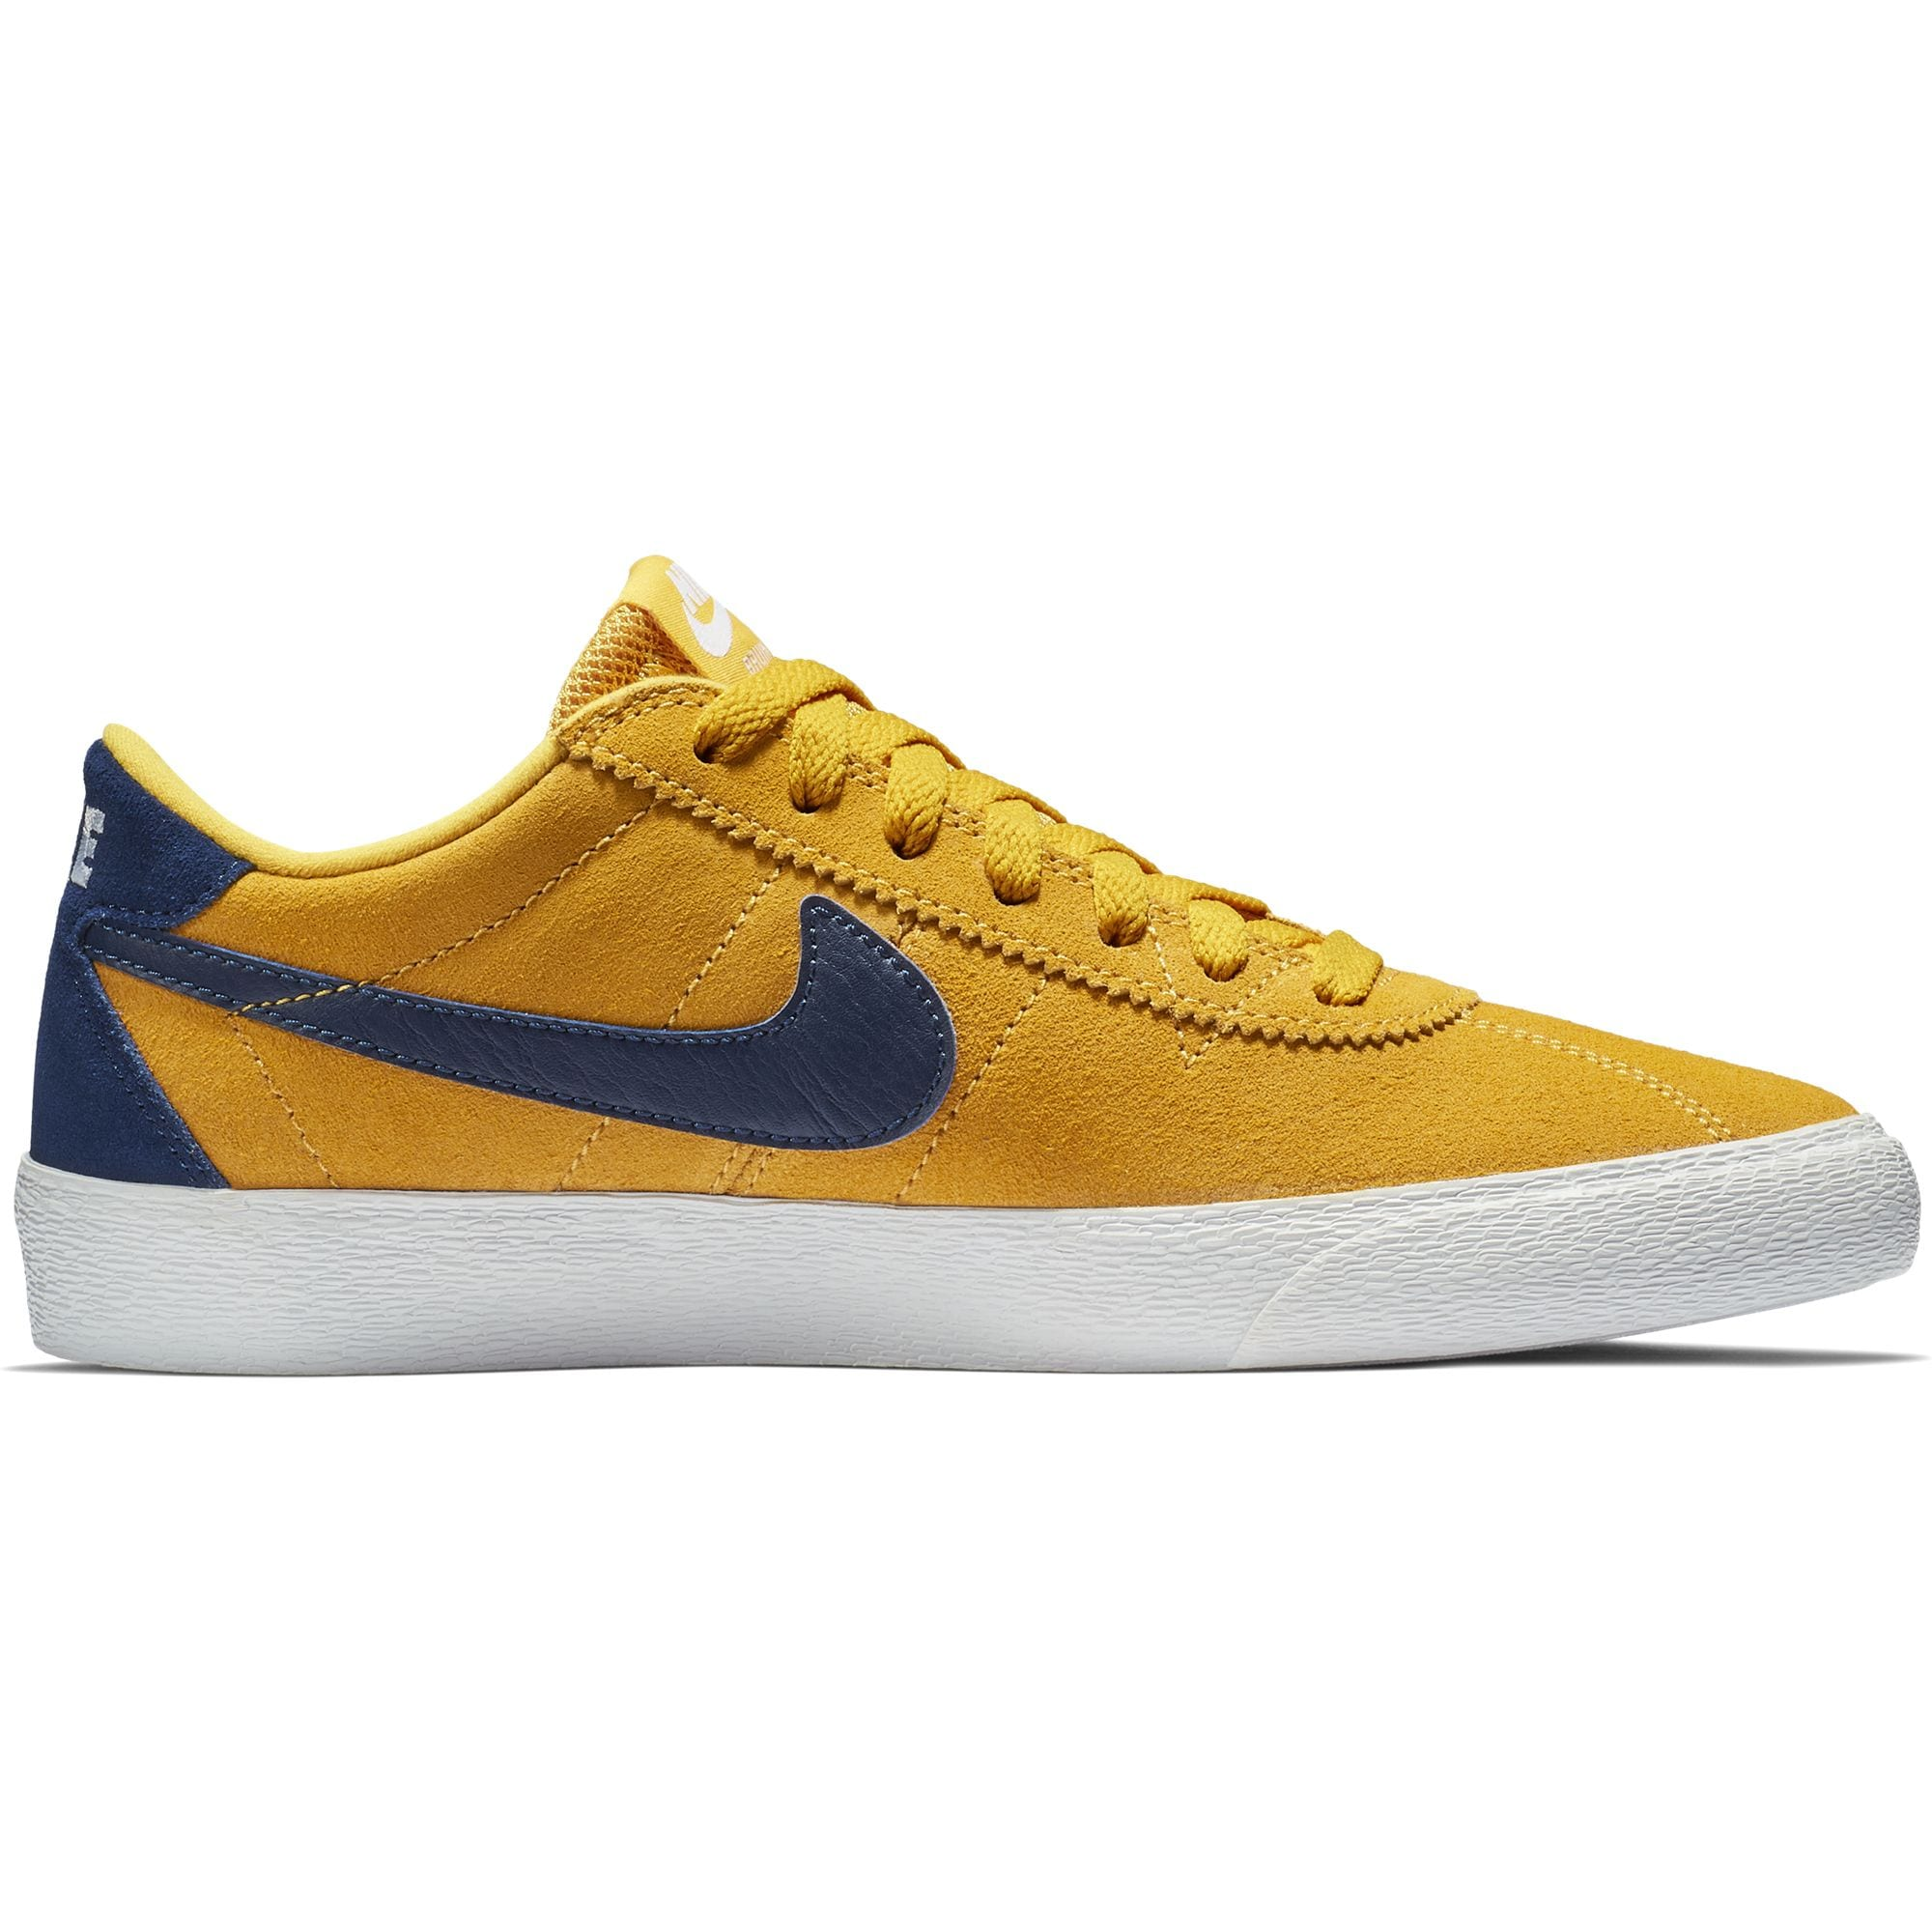 Nike SB Bruin Lo Womens Skate Shoes - Yellow Ochre/Blue Void/White